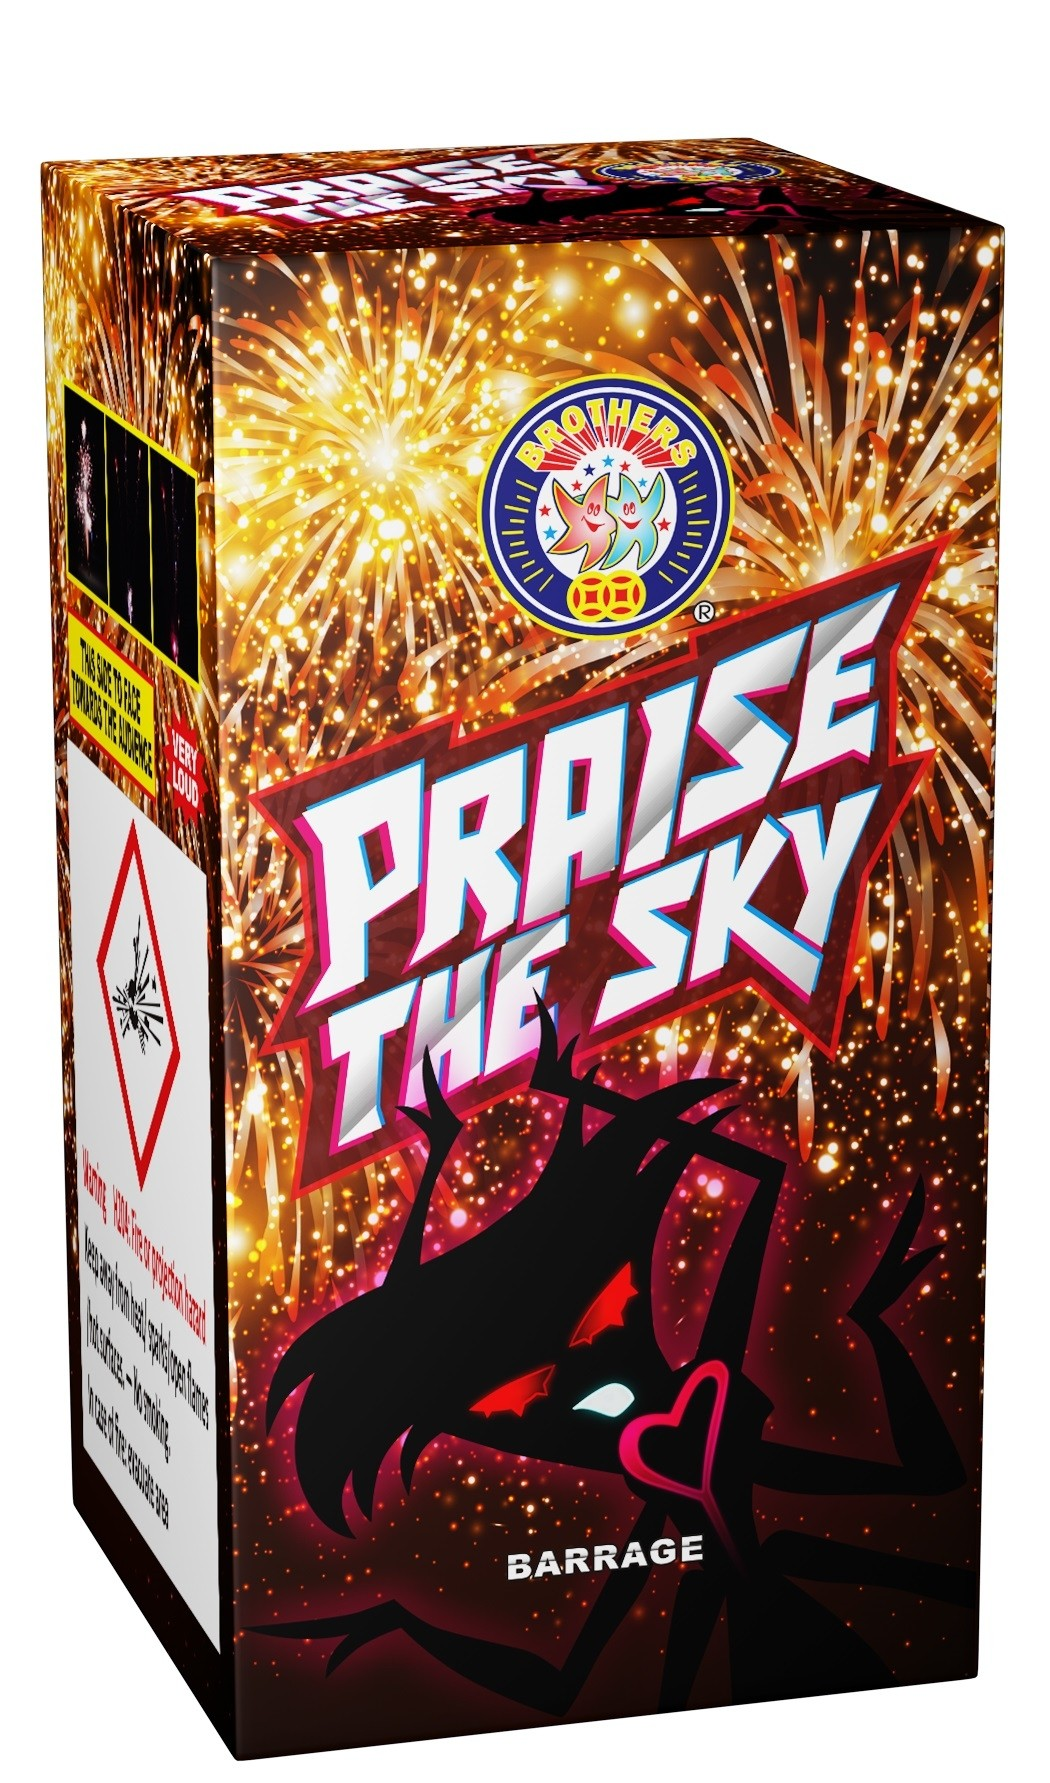 Praise the Sky Barrage from Brothers Pyrotechnics